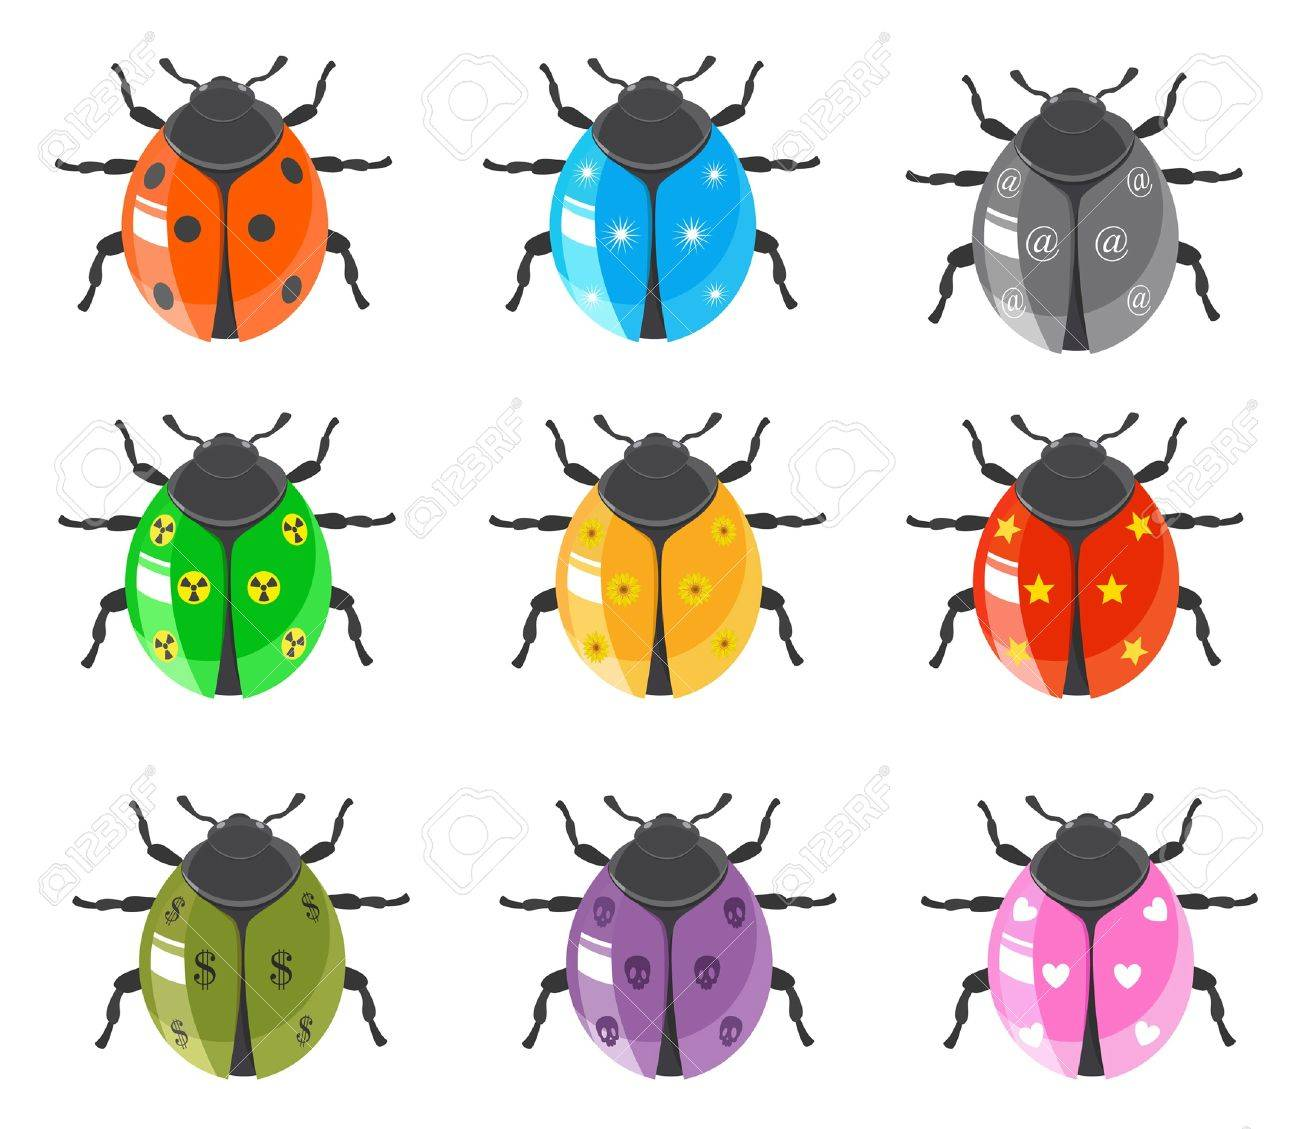 ladybug insect glossy icon set royalty free cliparts vectors and